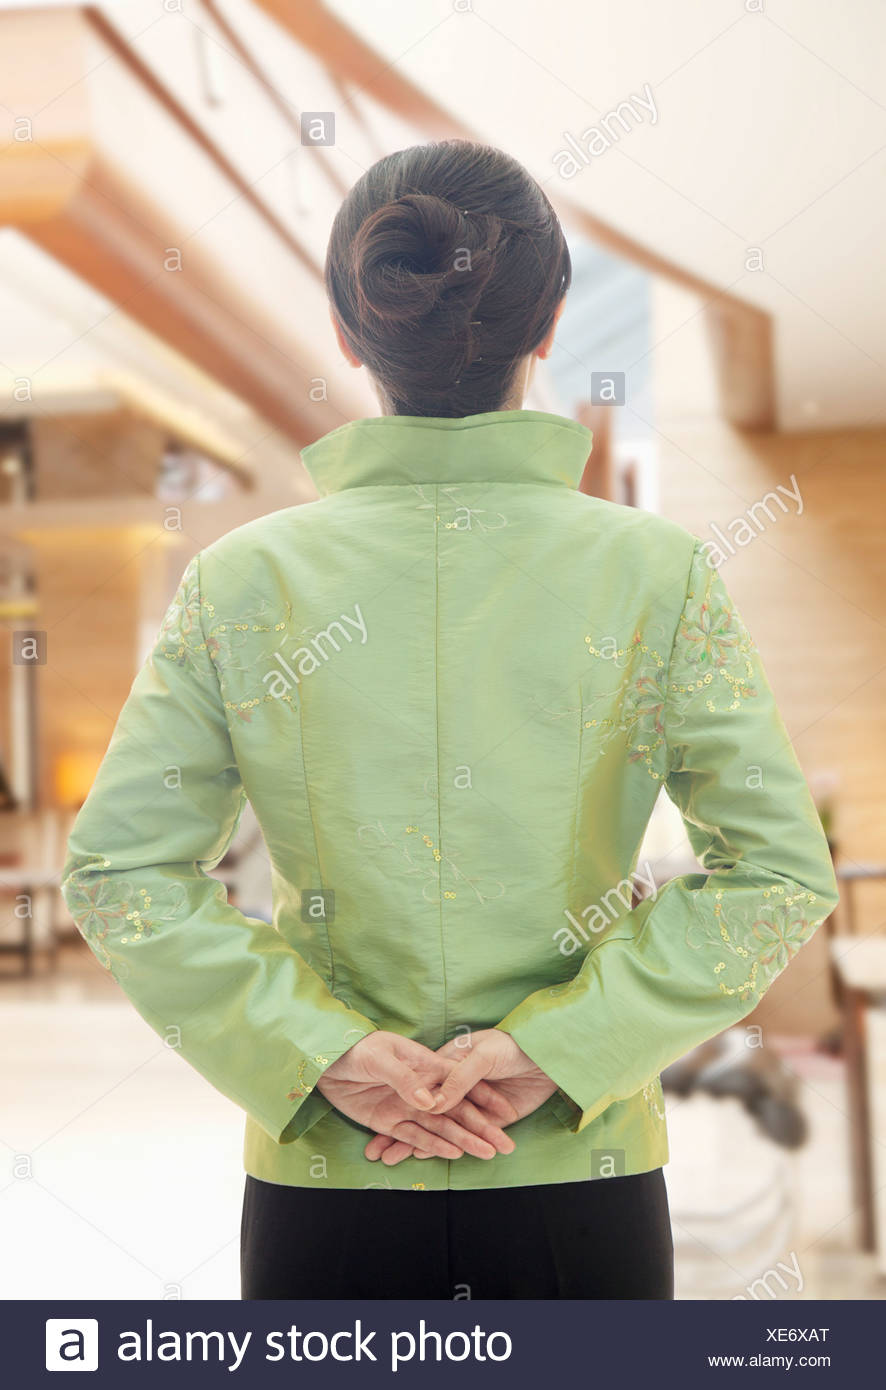 Restaurant Hotel Hostess in Traditional Chinese Clothing 2f6e7fcf3